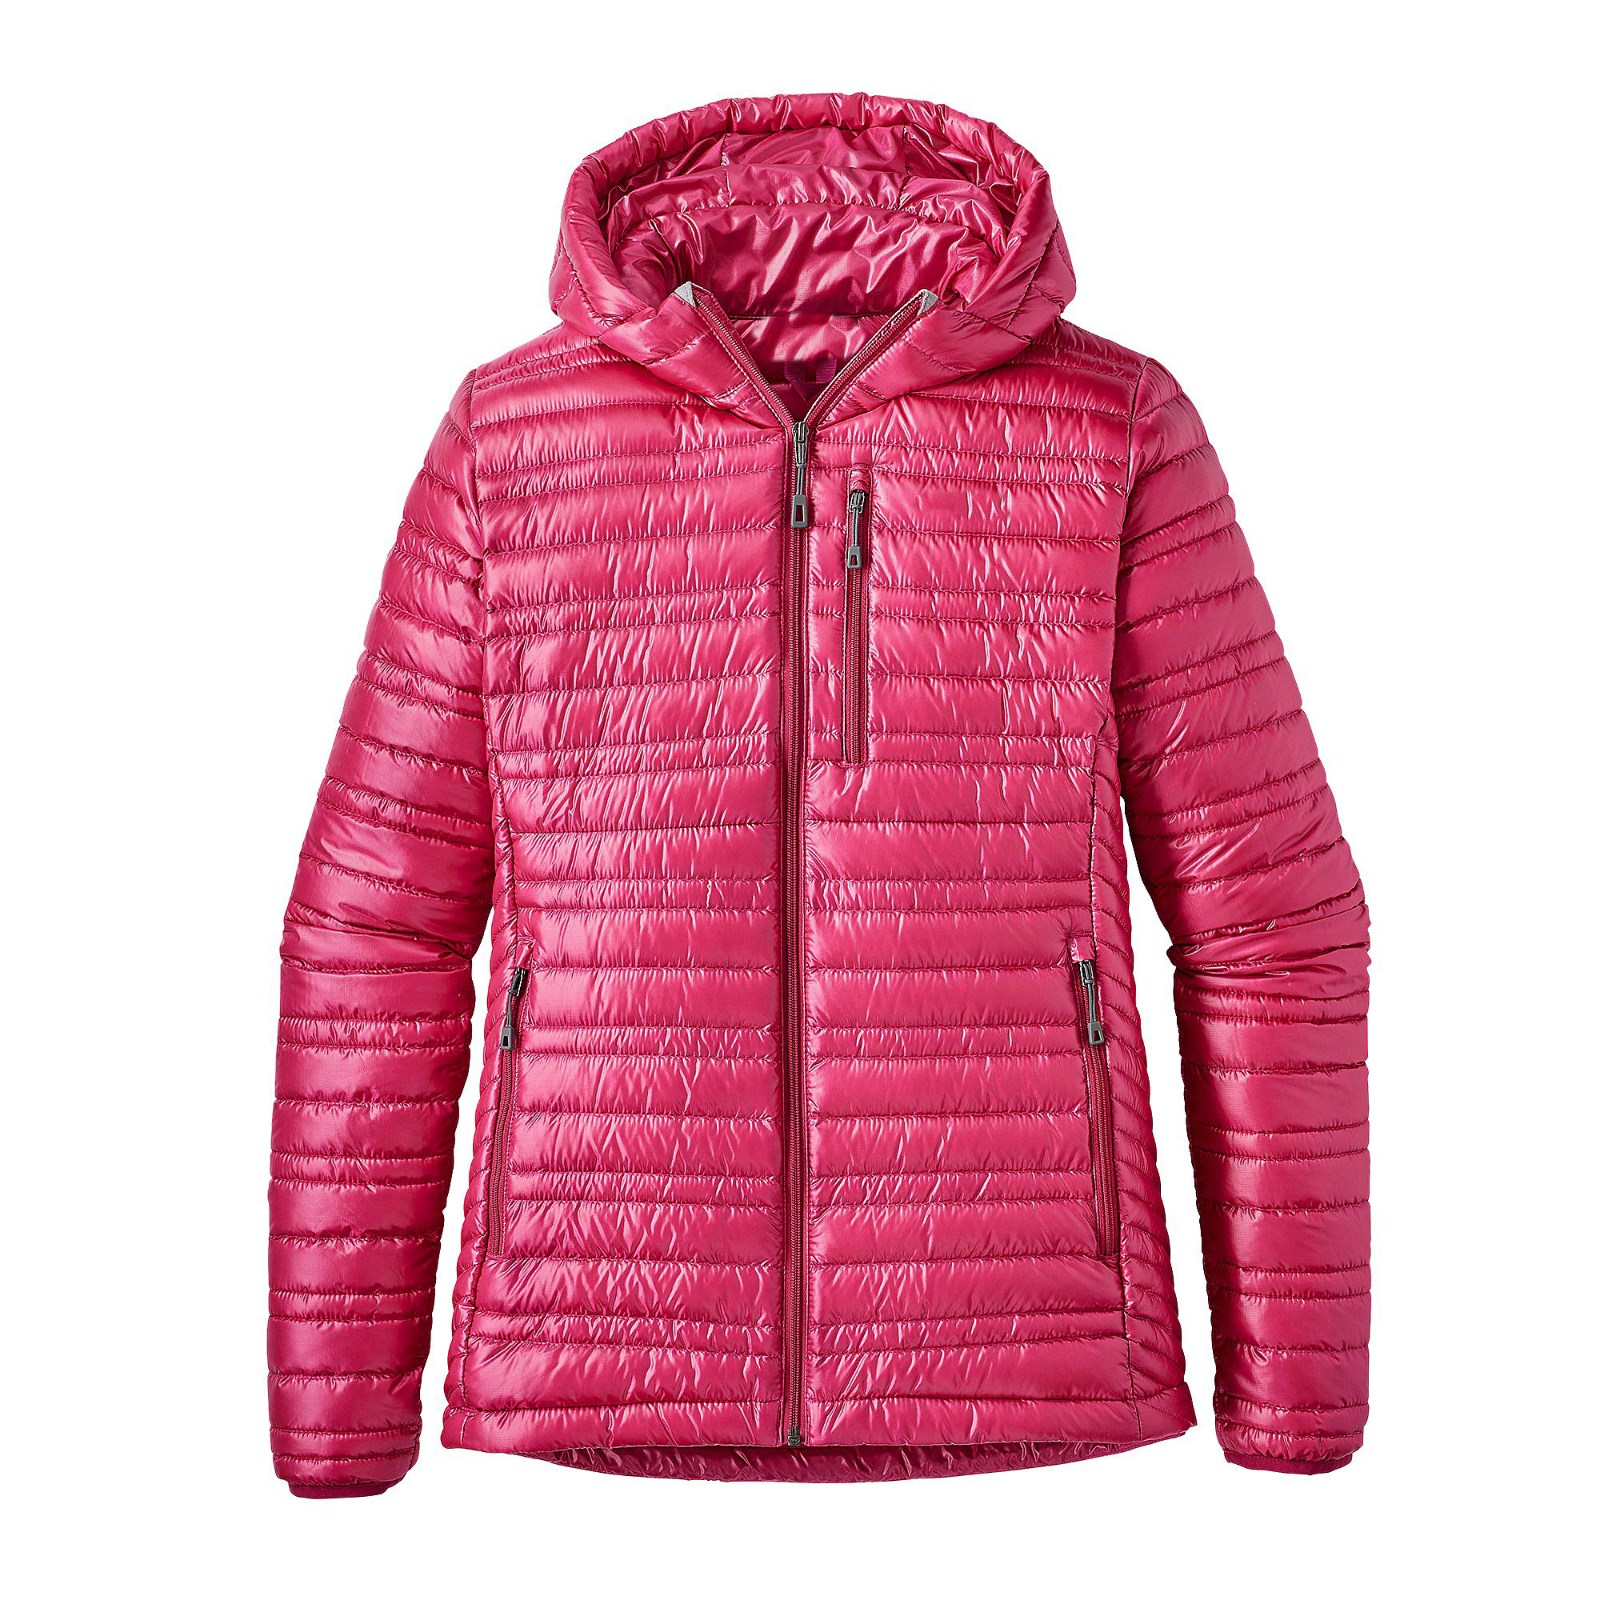 Women's Ultralight Down Hoody Jacket Manufacturers, Women's Ultralight Down Hoody Jacket Factory, Supply Women's Ultralight Down Hoody Jacket